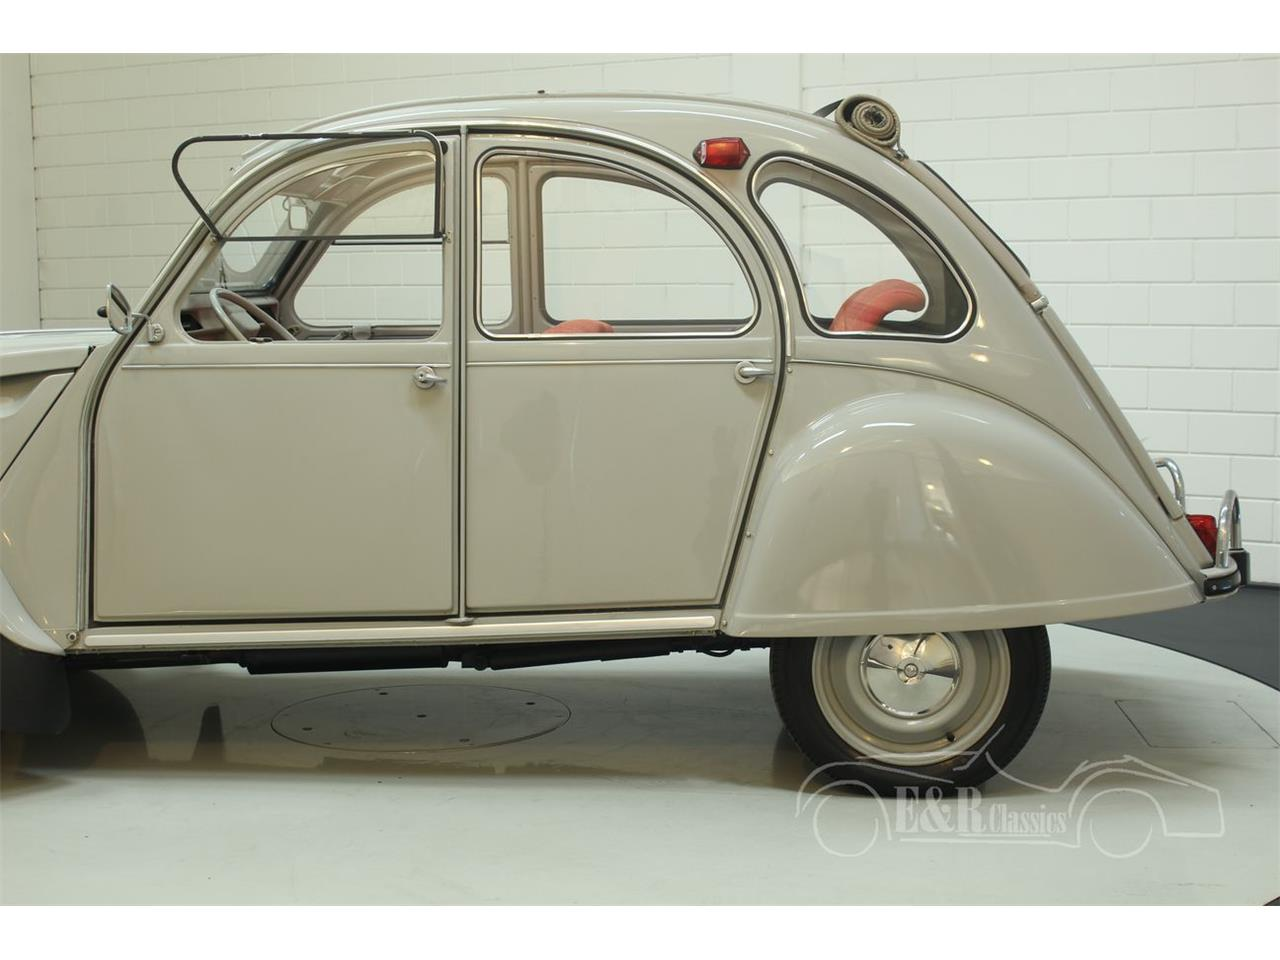 Large Picture of '66 Citroen 2CV located in Waalwijk - Keine Angabe - - $22,550.00 - PGSV